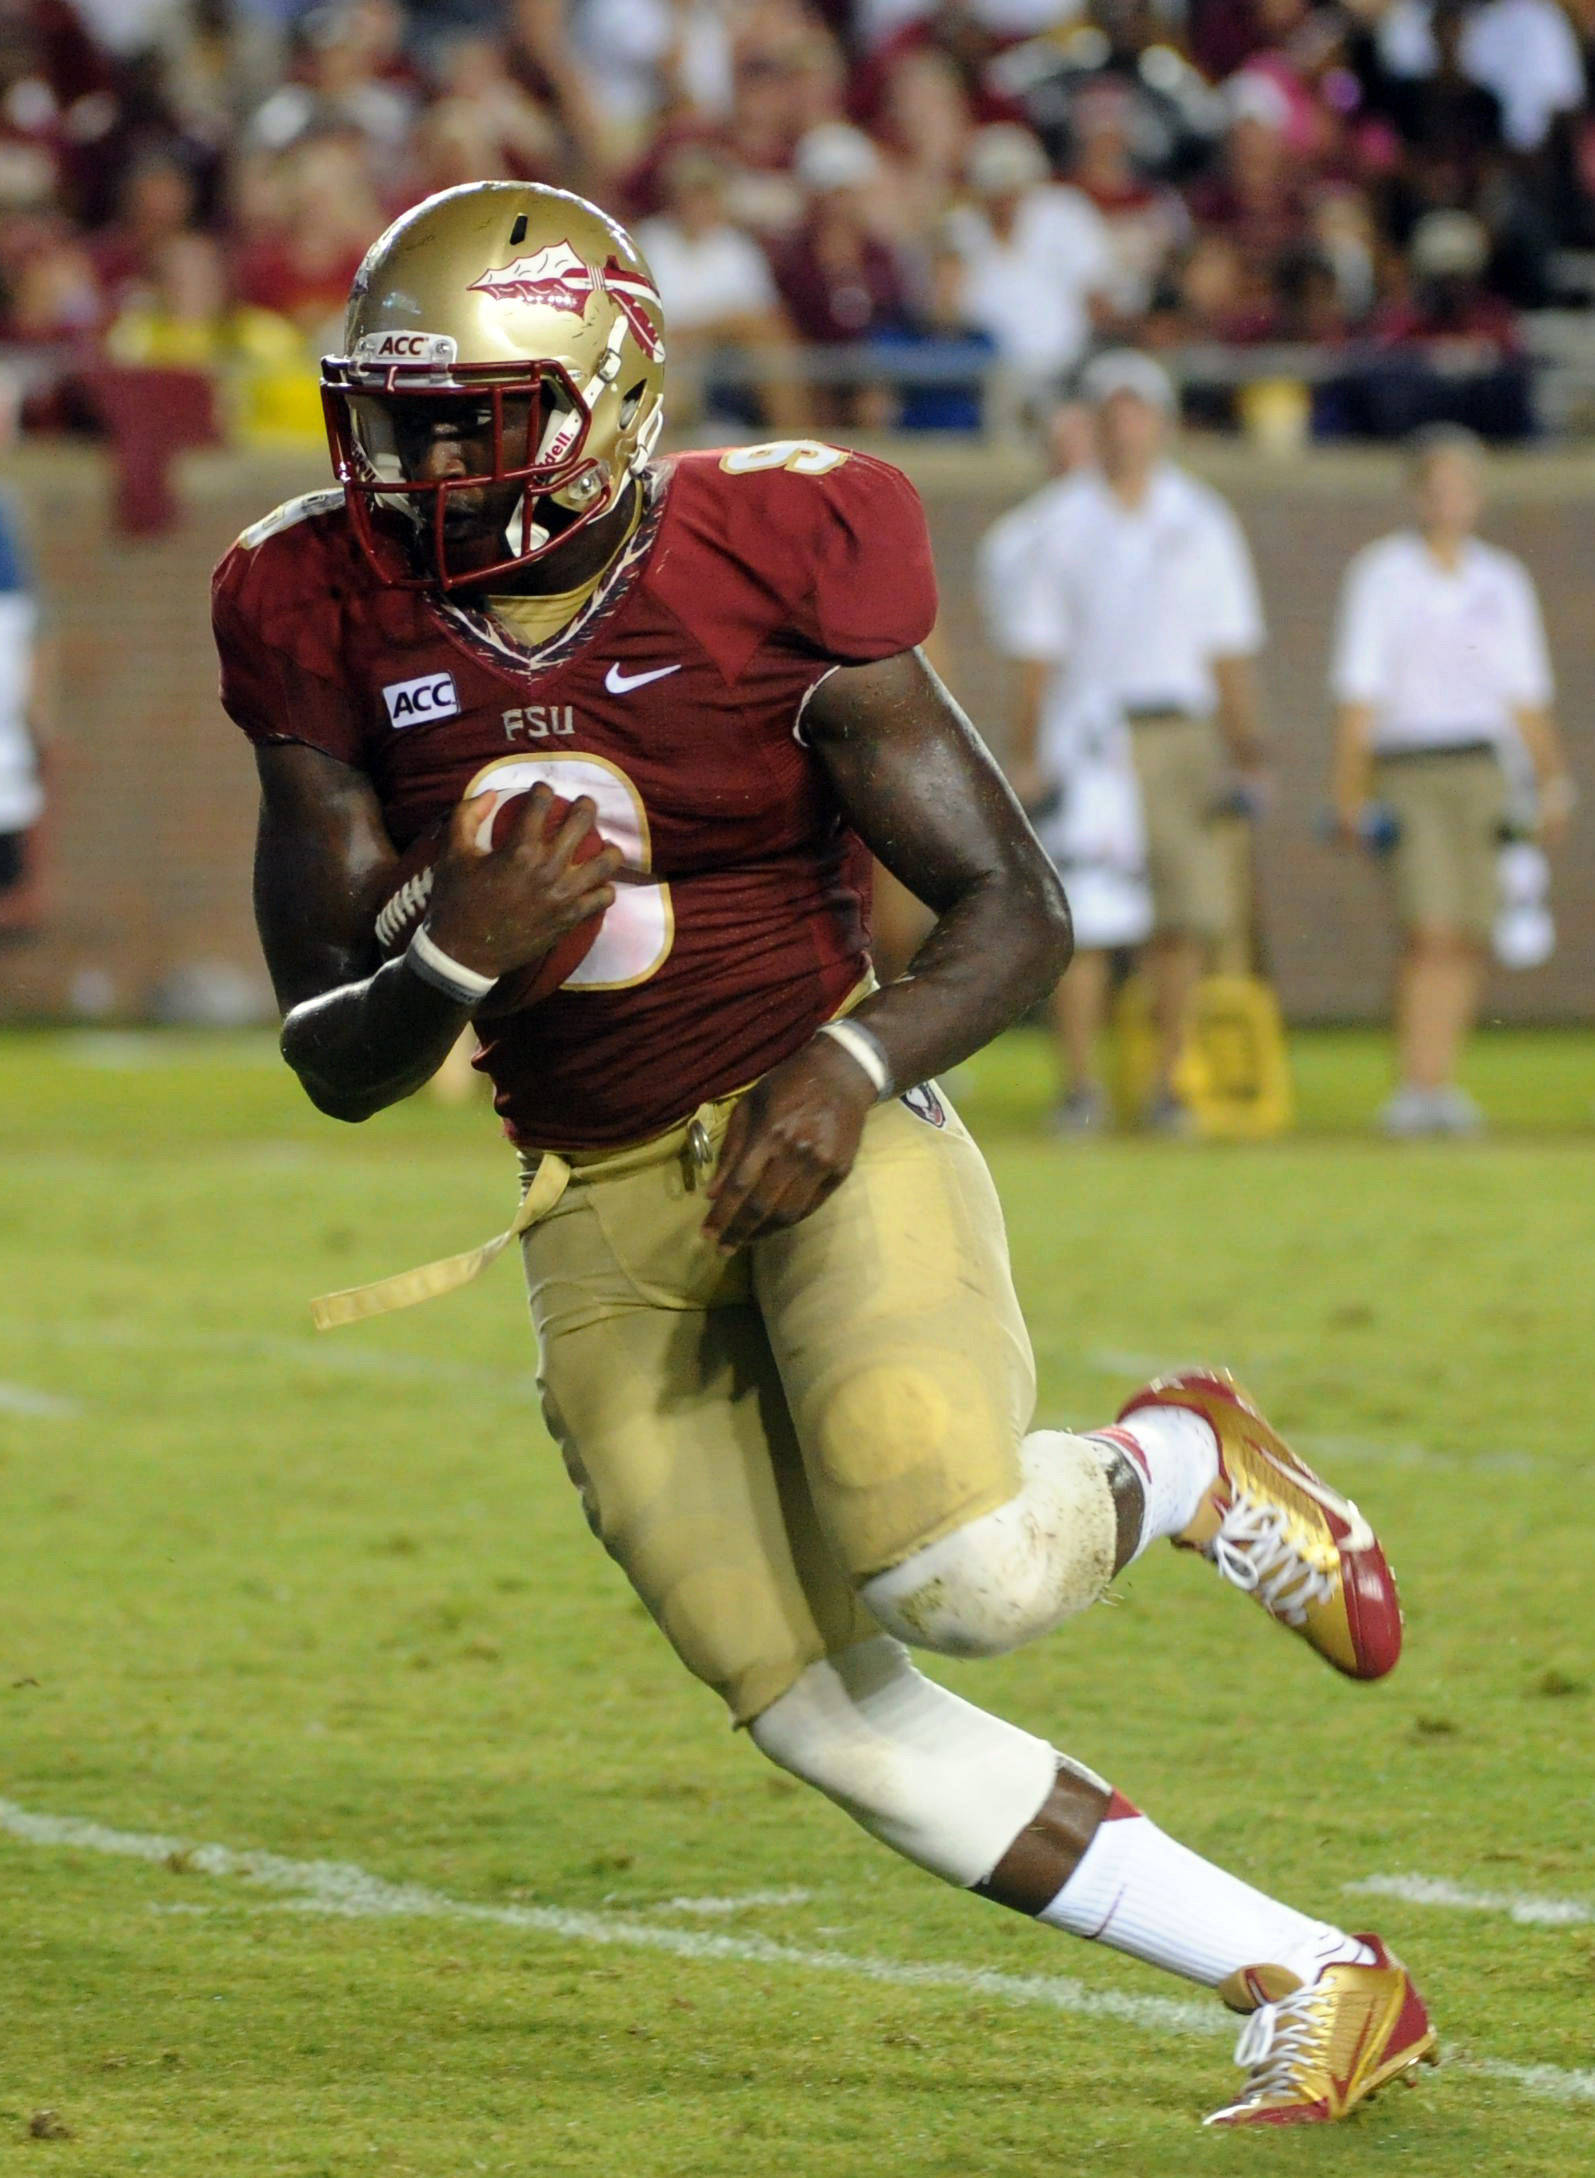 Florida State Seminoles running back Karlos Williams (9) runs the ball during the second half of the game against the Bethune-Cookman Wildcats. (Melina Vastola-USA TODAY Sports)